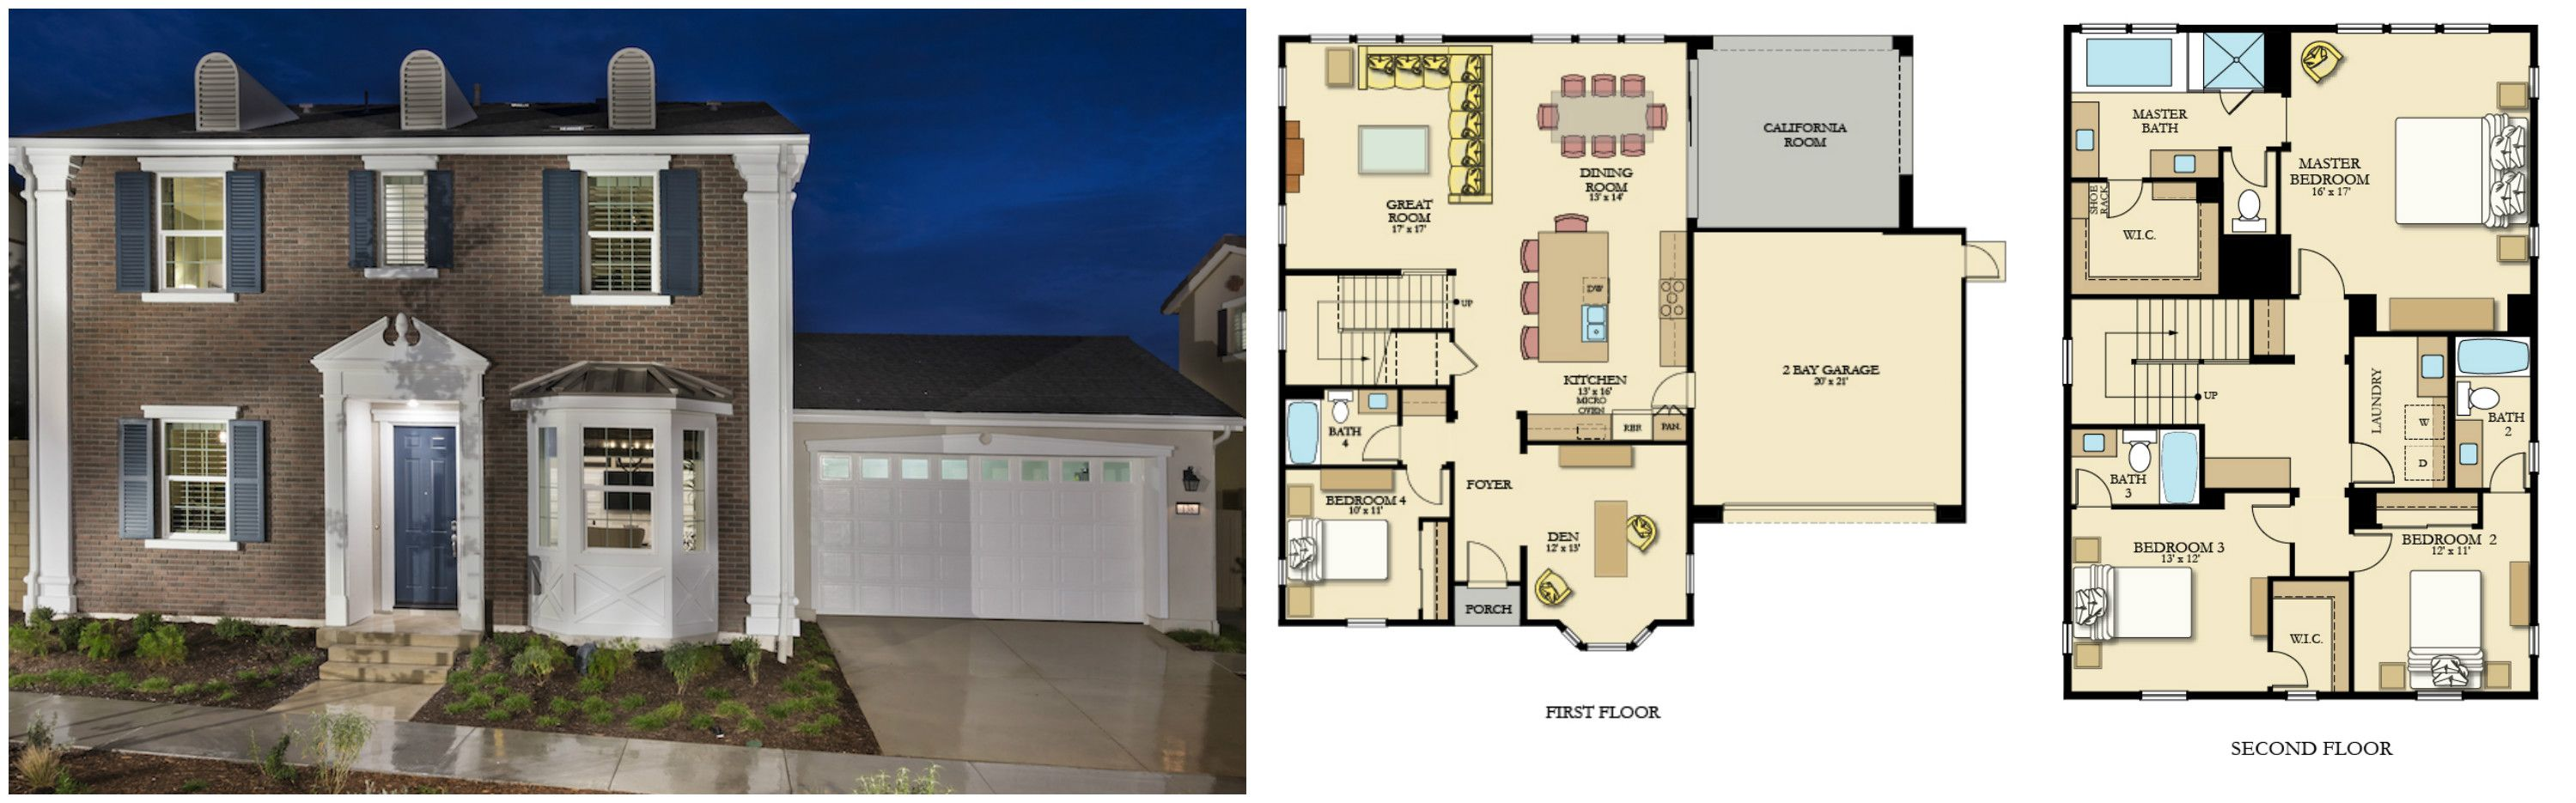 Melody Residence 3 Floorplan. Irvine. Beacon Park. Orange County. New Home. Real Estate.